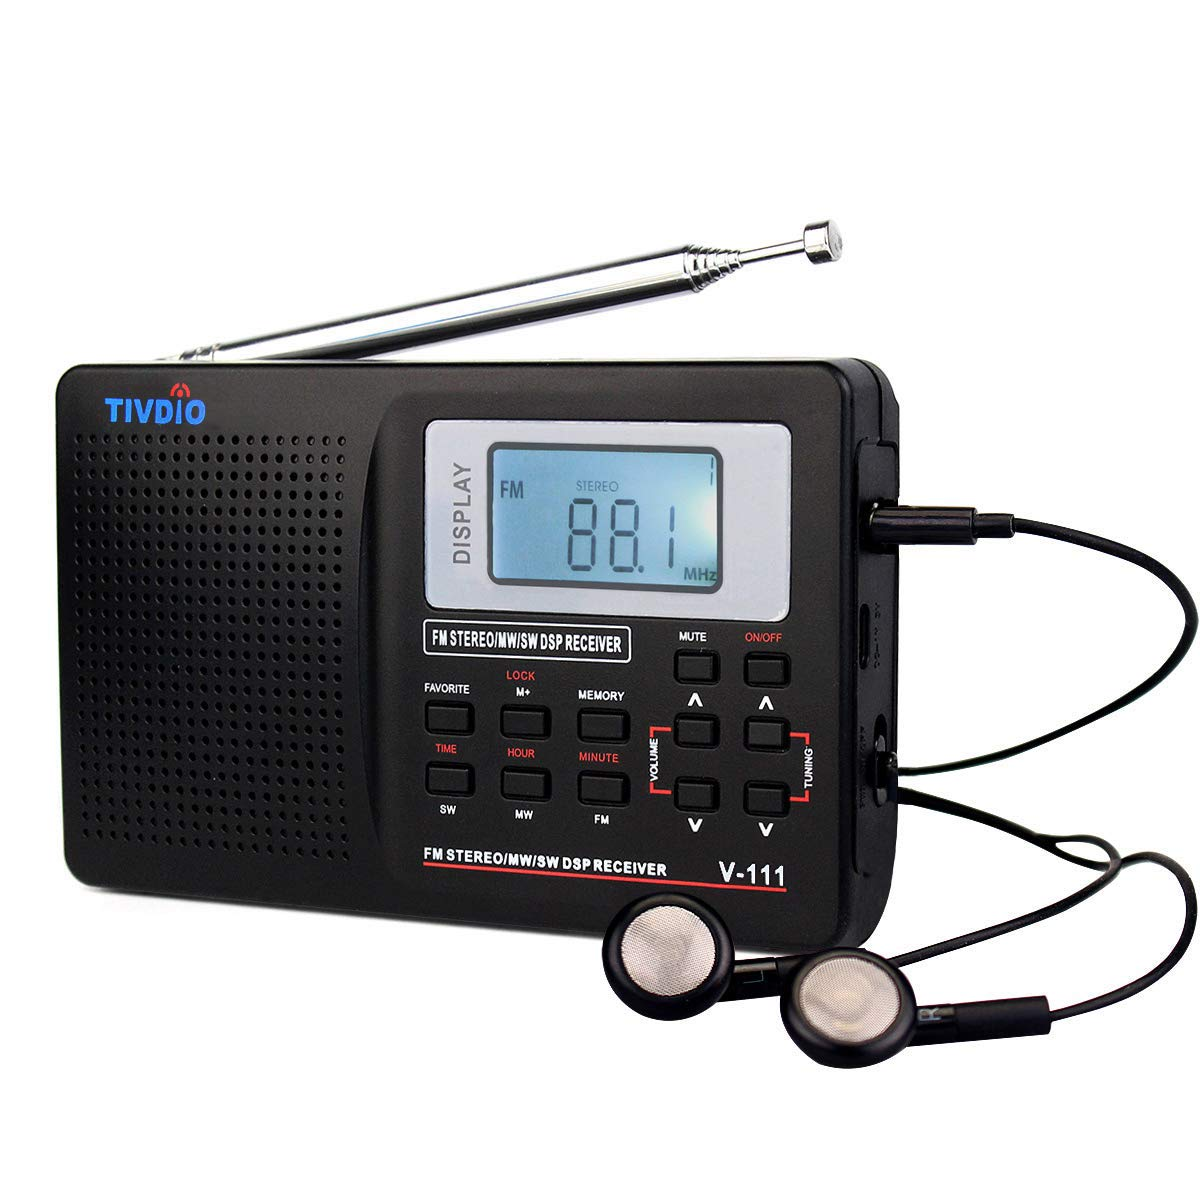 TIVDIO V111 Portable Radio AM/FM/Shortwave Transistor Radio DSP AA Battery Powered with Digital Alarm Clock Sleep Timer with Earphones(Black)